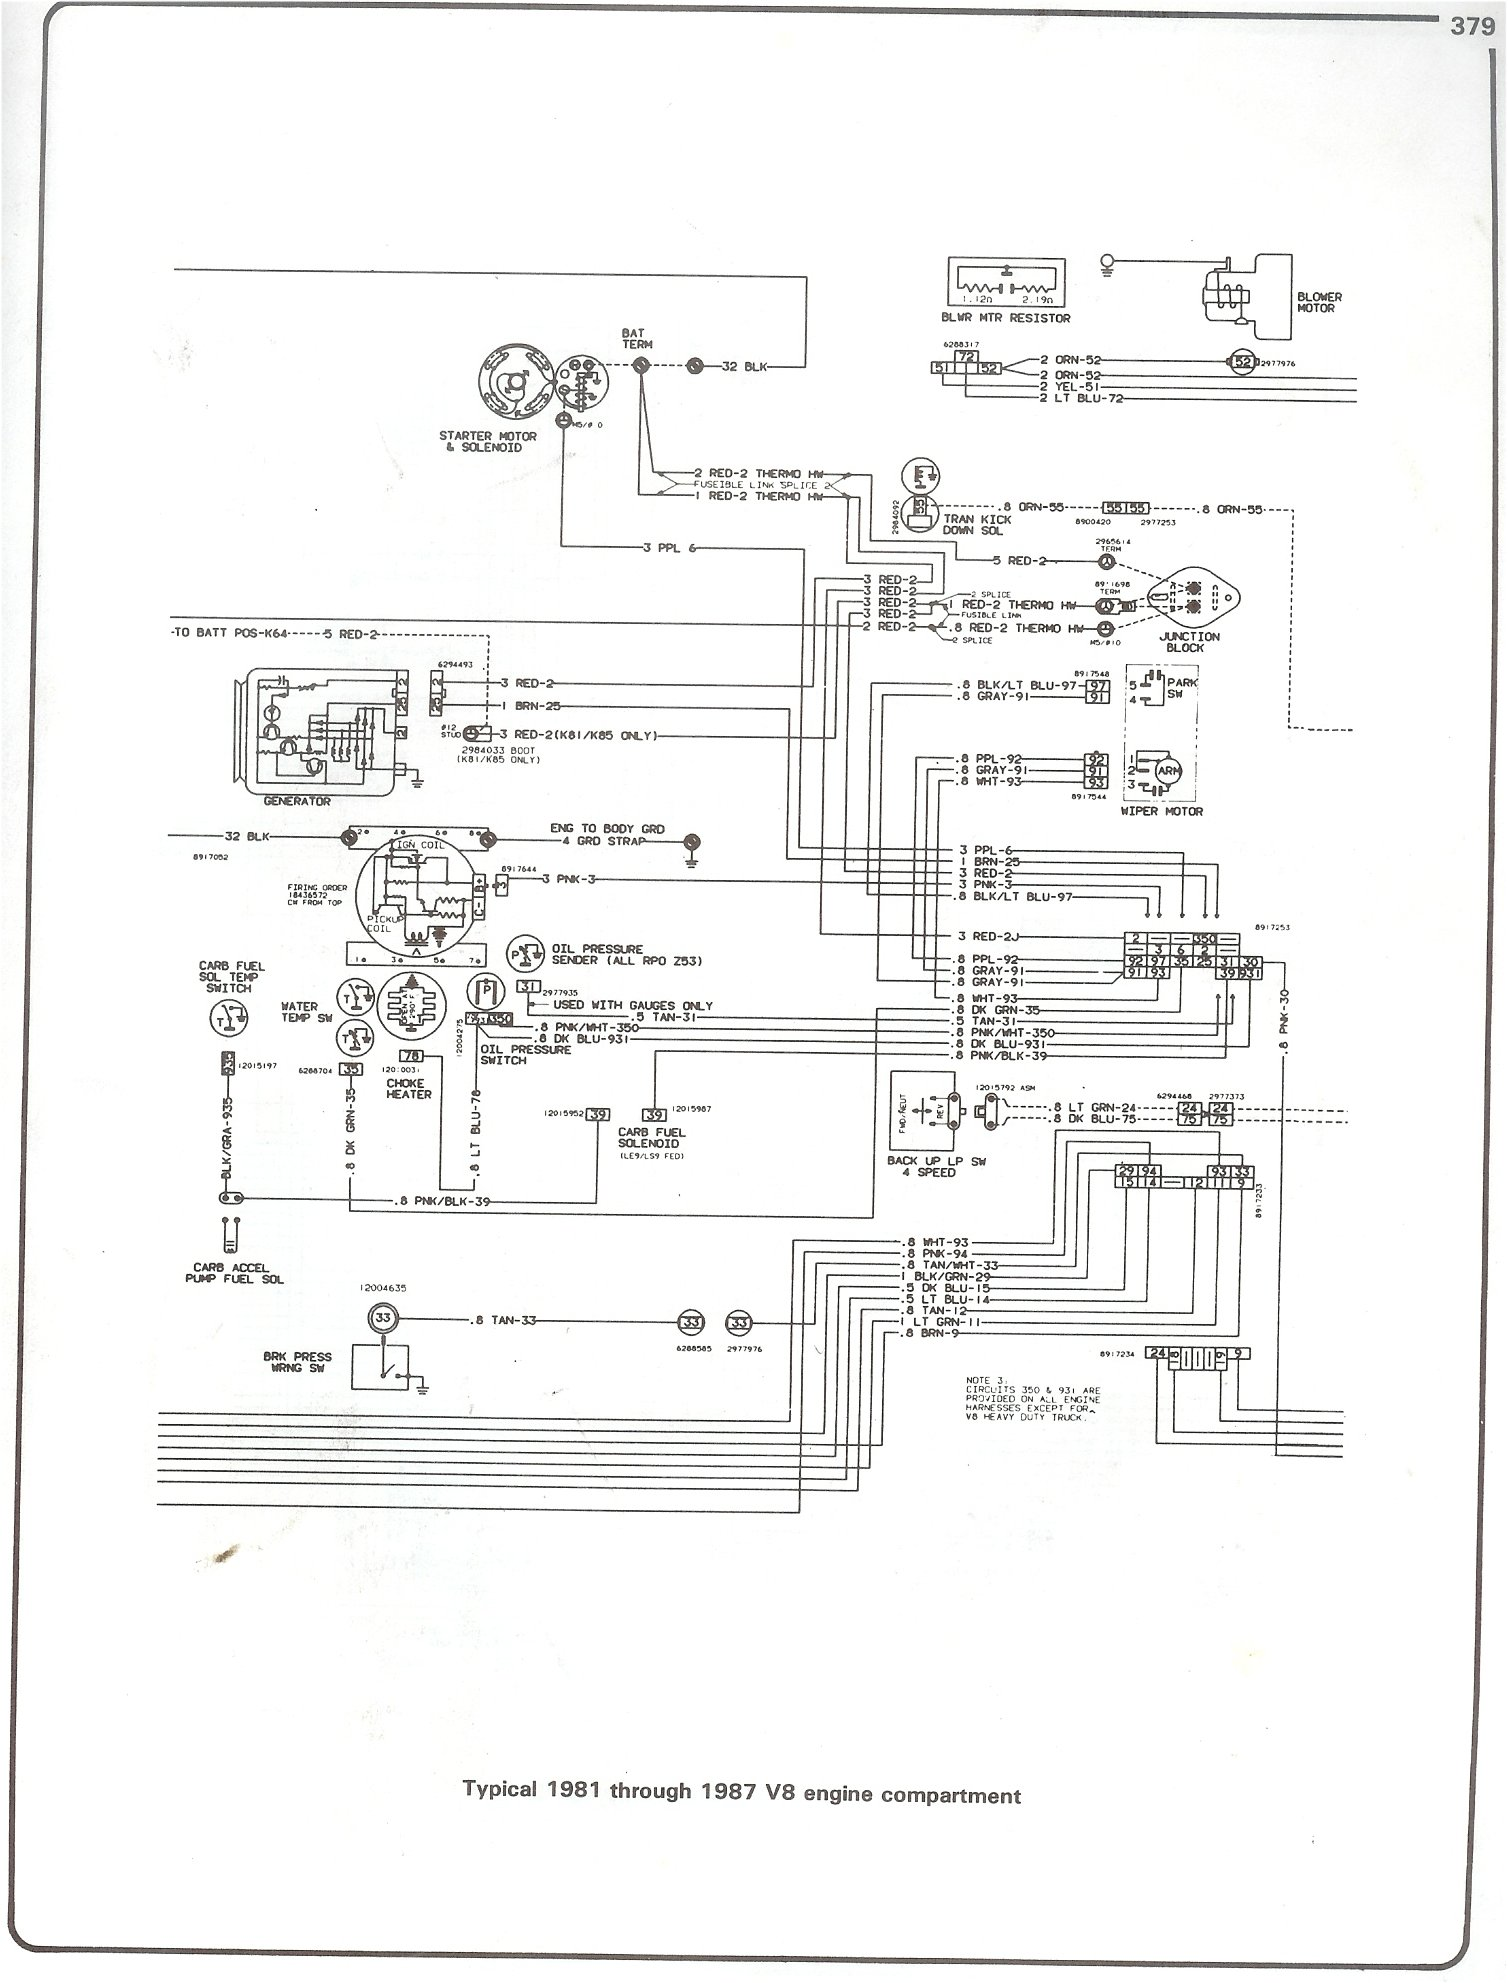 73 chevy truck wiring diagram blinker wiring diagram electricity rh agarwalexports co 1949 Chevy Truck Wiring Diagram 1974 chevy truck dash wiring diagram